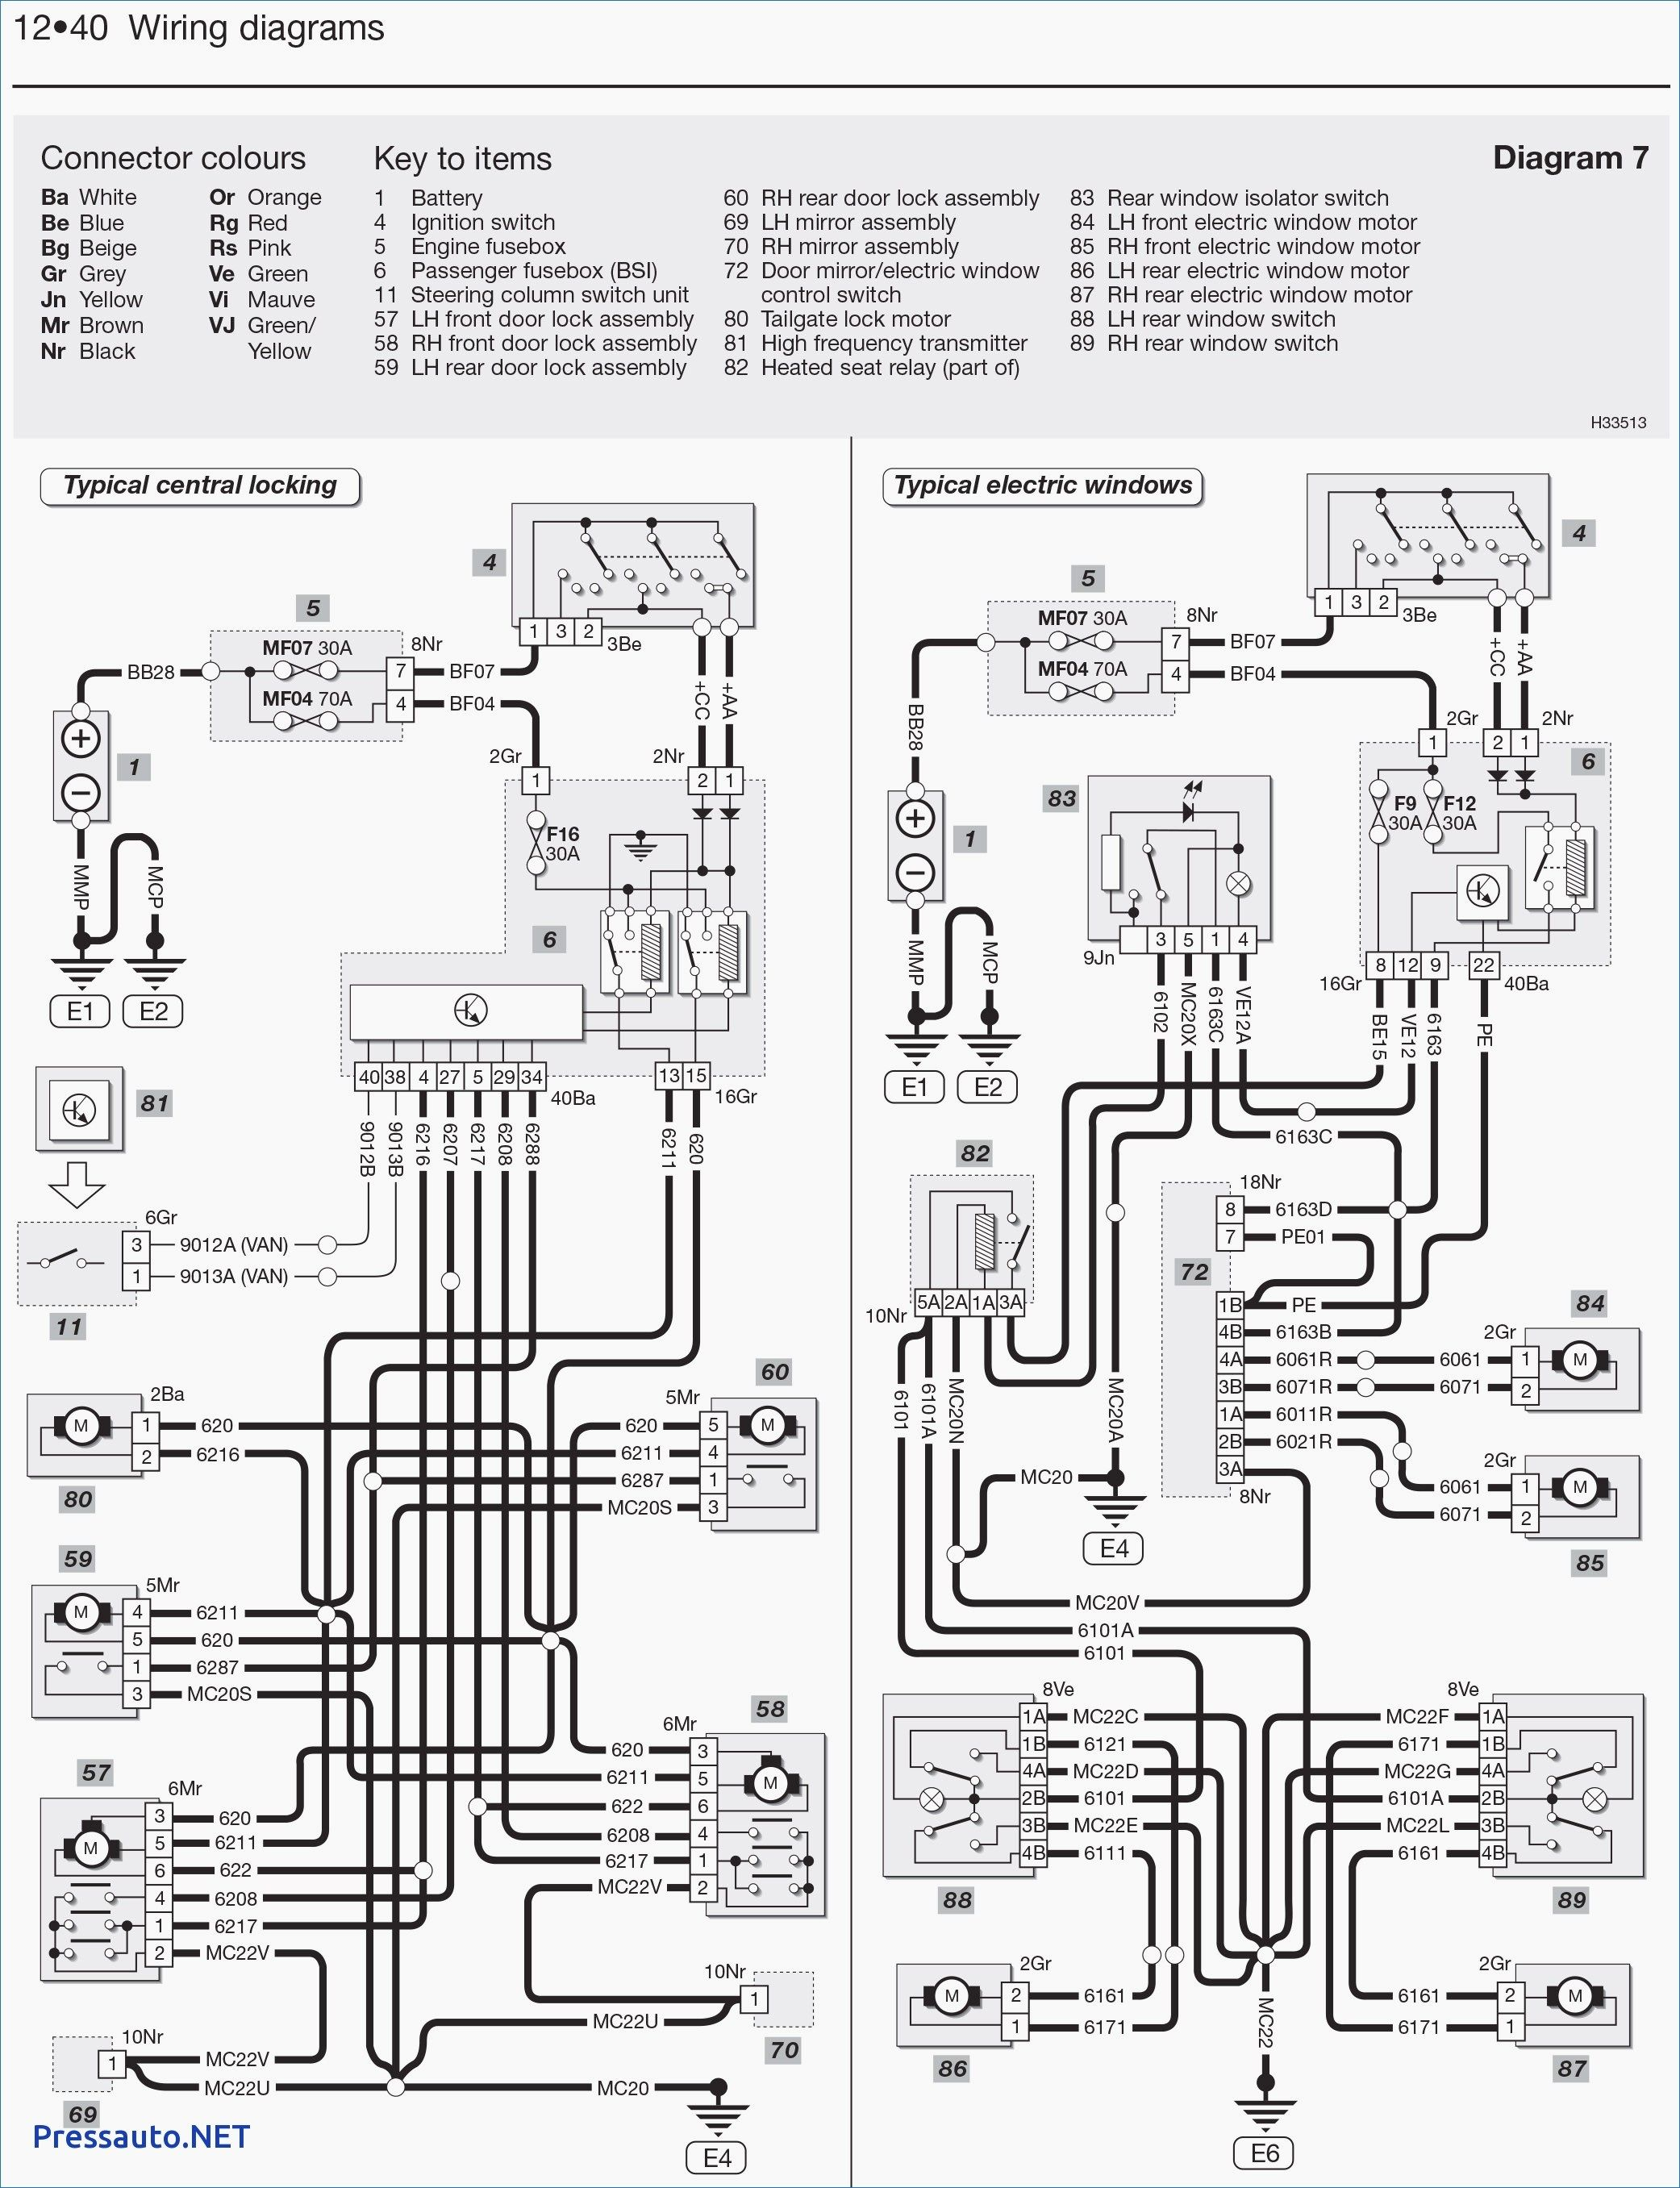 haynes wiring diagram legend wiring diagram diagram wire floorhaynes wiring diagram legend wiring diagram [ 2083 x 2713 Pixel ]